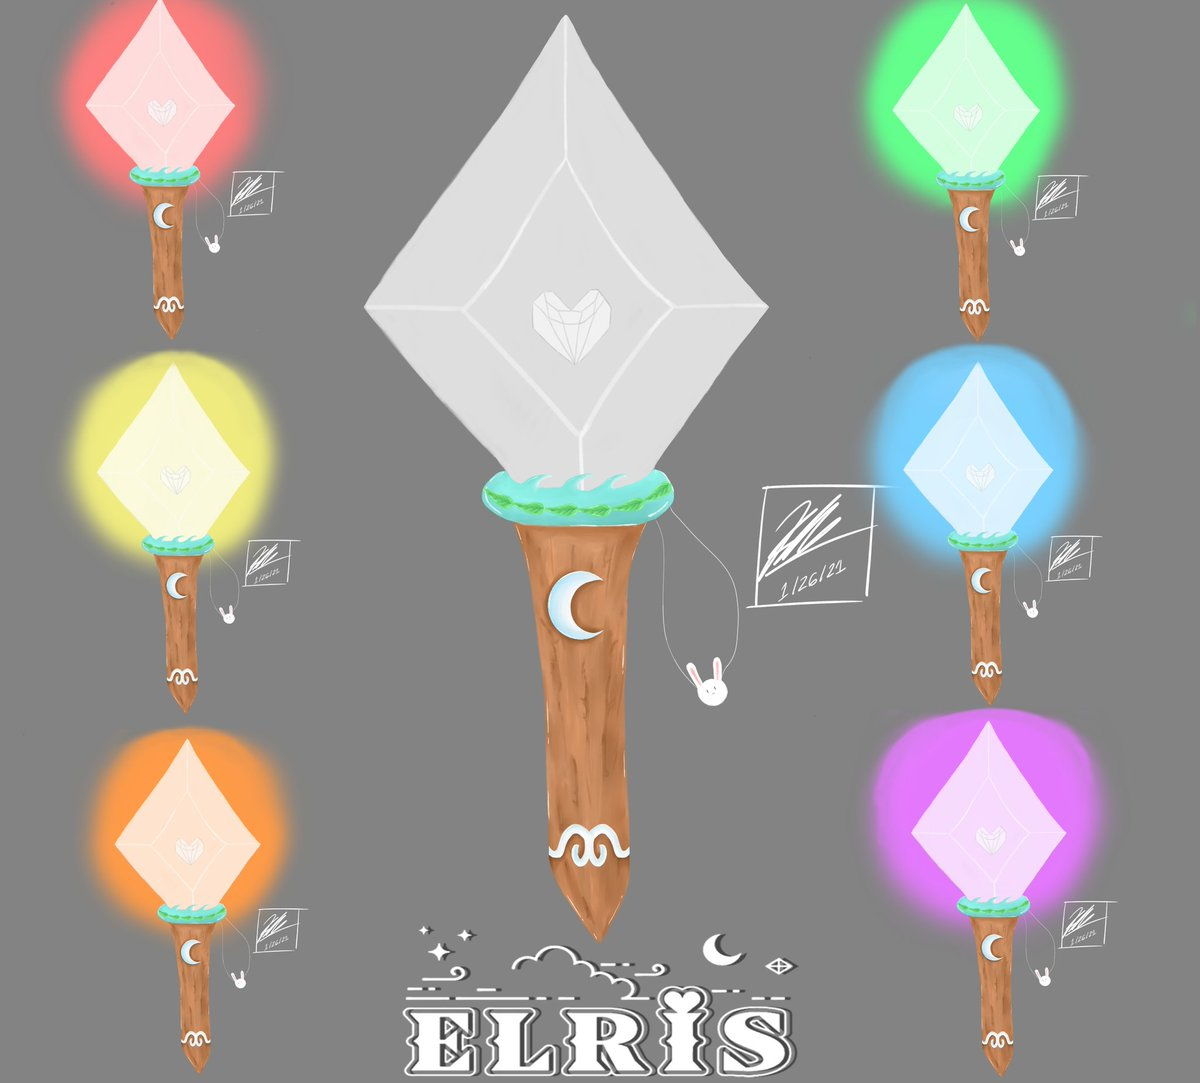 ELRIS Lightstick Concept! I drew it based off of their symbols on their logo and also added a bunny for the Alice in Wonderland theme. I also did rainbow changing lights as well to go with the group! #ELRIS #YUKYUNG #SOHEE #BELLA #HYESEONG #KARIN #EJ #CHAEJEONG #BLRIS